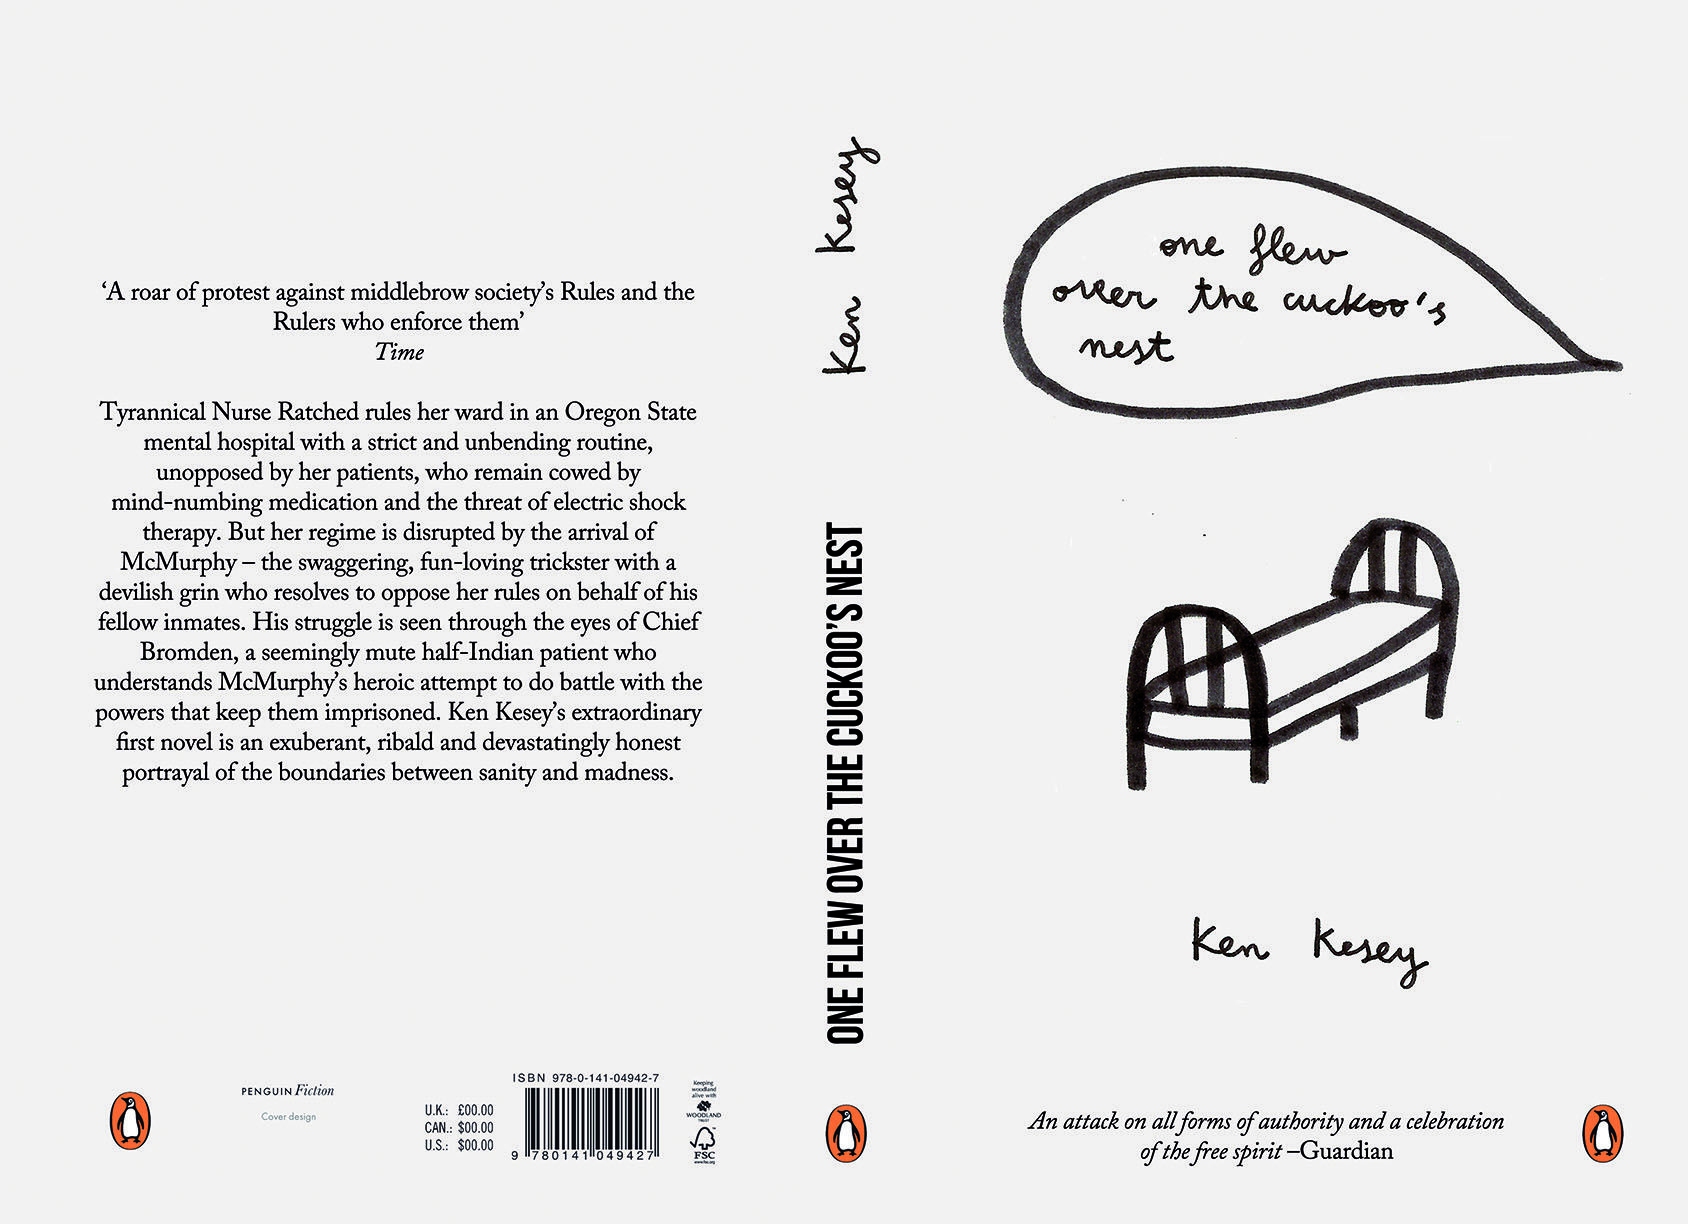 book covers penguin google keres eacute s cover me ken one flew over the cuckoo s nest ken kesey penguin books